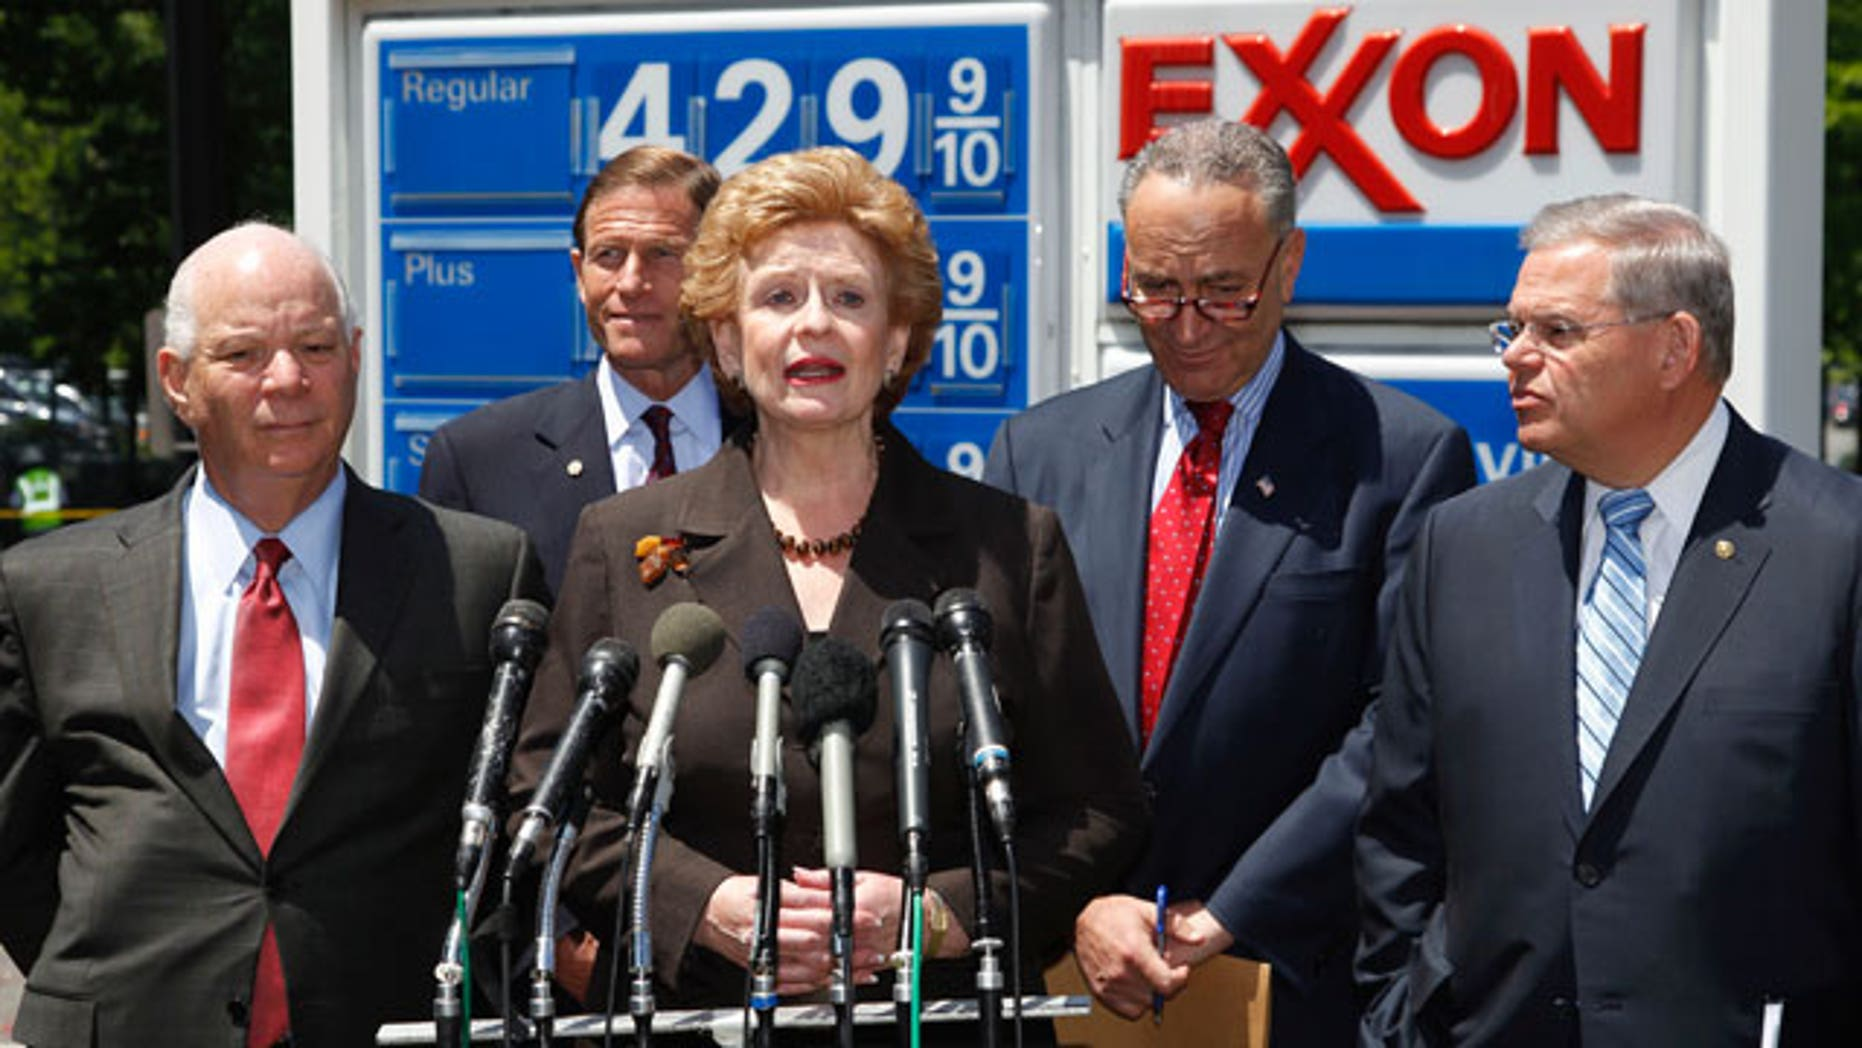 Democratic Senators, from left, Ben Cardin from Maryland, Richard Blumenthal from Connecticut, Debbie Stabenow from Michigan, Charles Schumer from New York, and Robert Menendez from New Jersey take part in a news conference at an Exxon gas station on Capitol Hill in Washington, Wednesday, May 11, 2011, to talk about oil industry subsidies to help reduce the deficit.